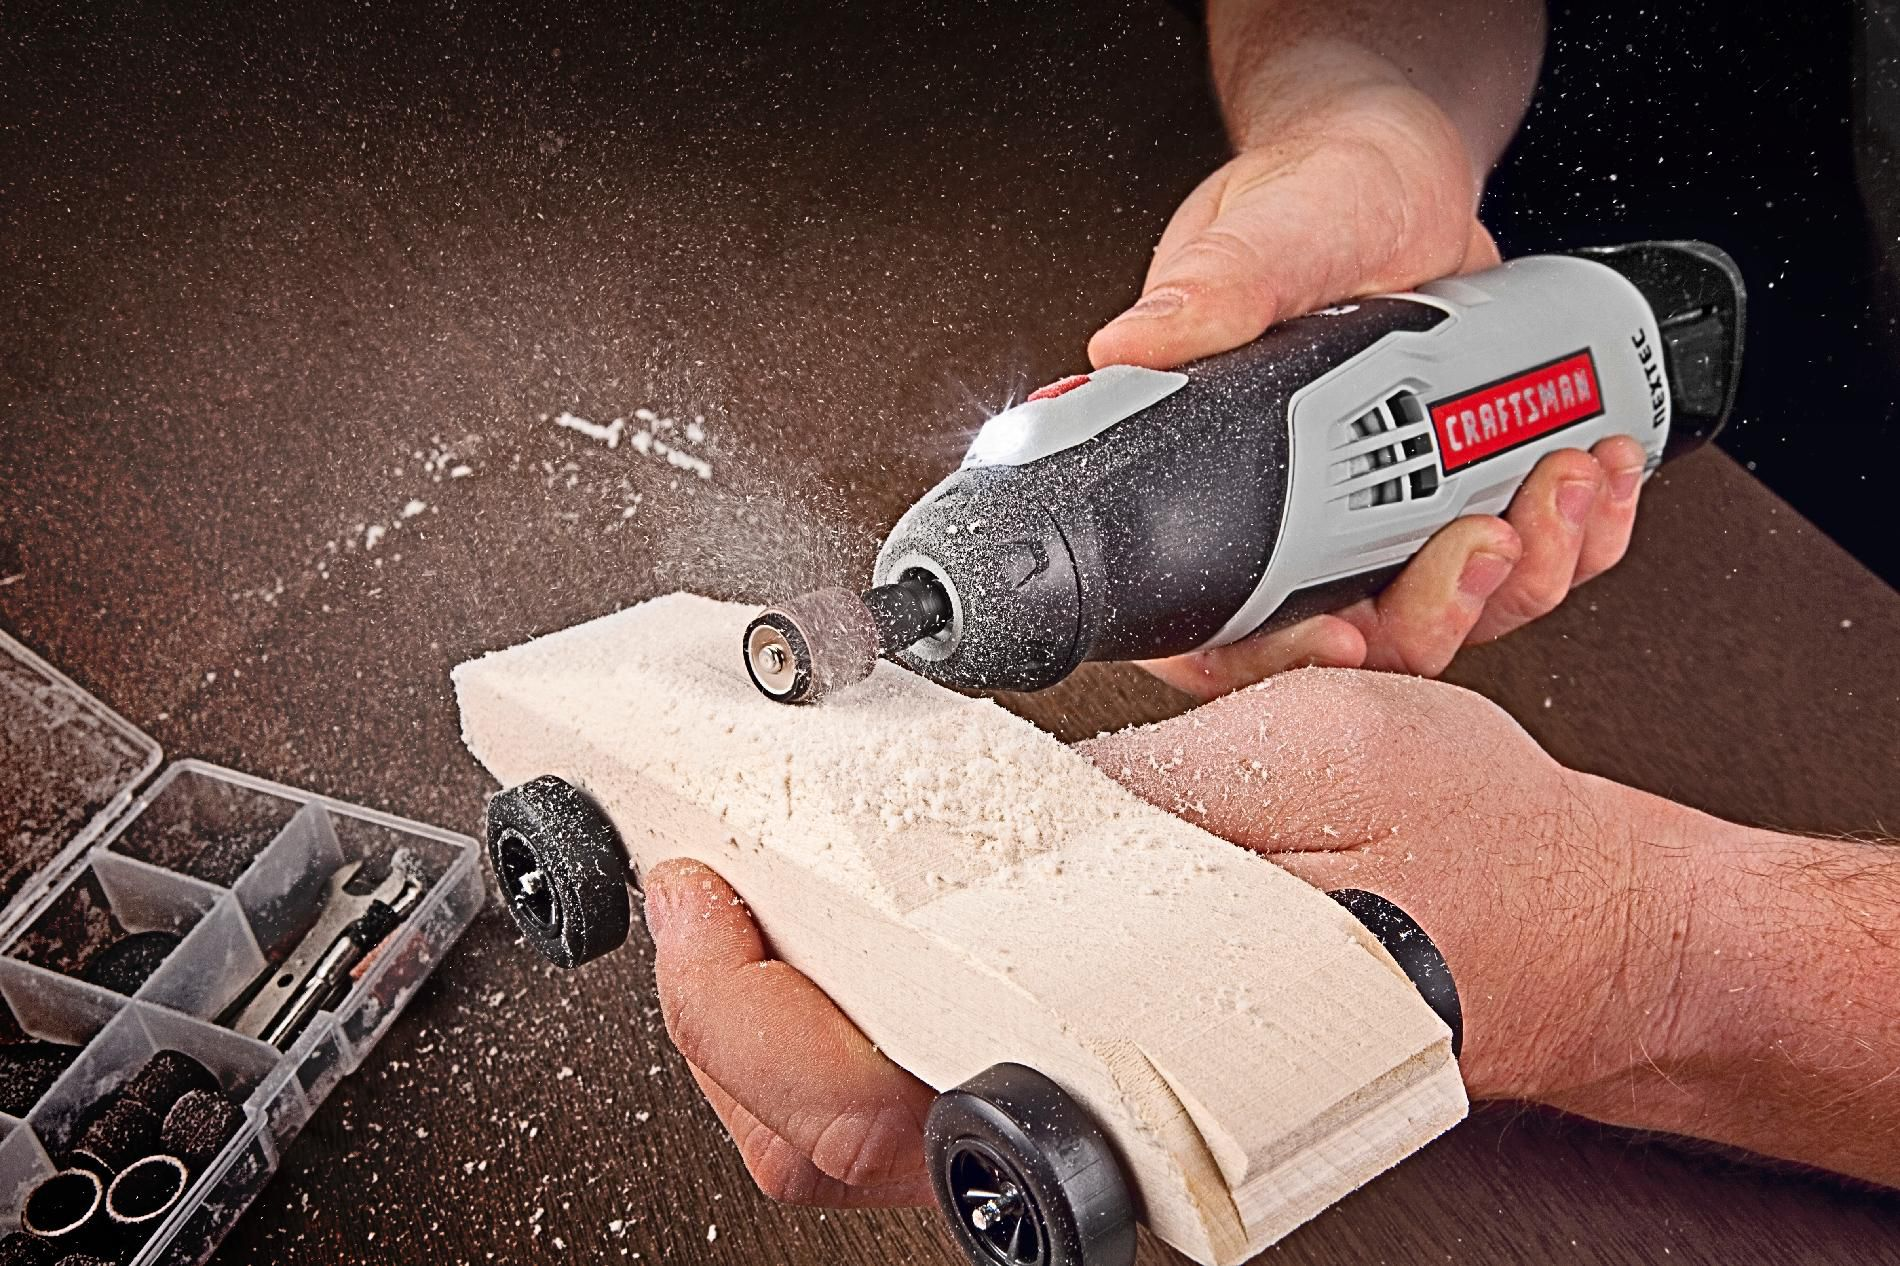 Craftsman Nextec Rotary Tool with LED Work Light